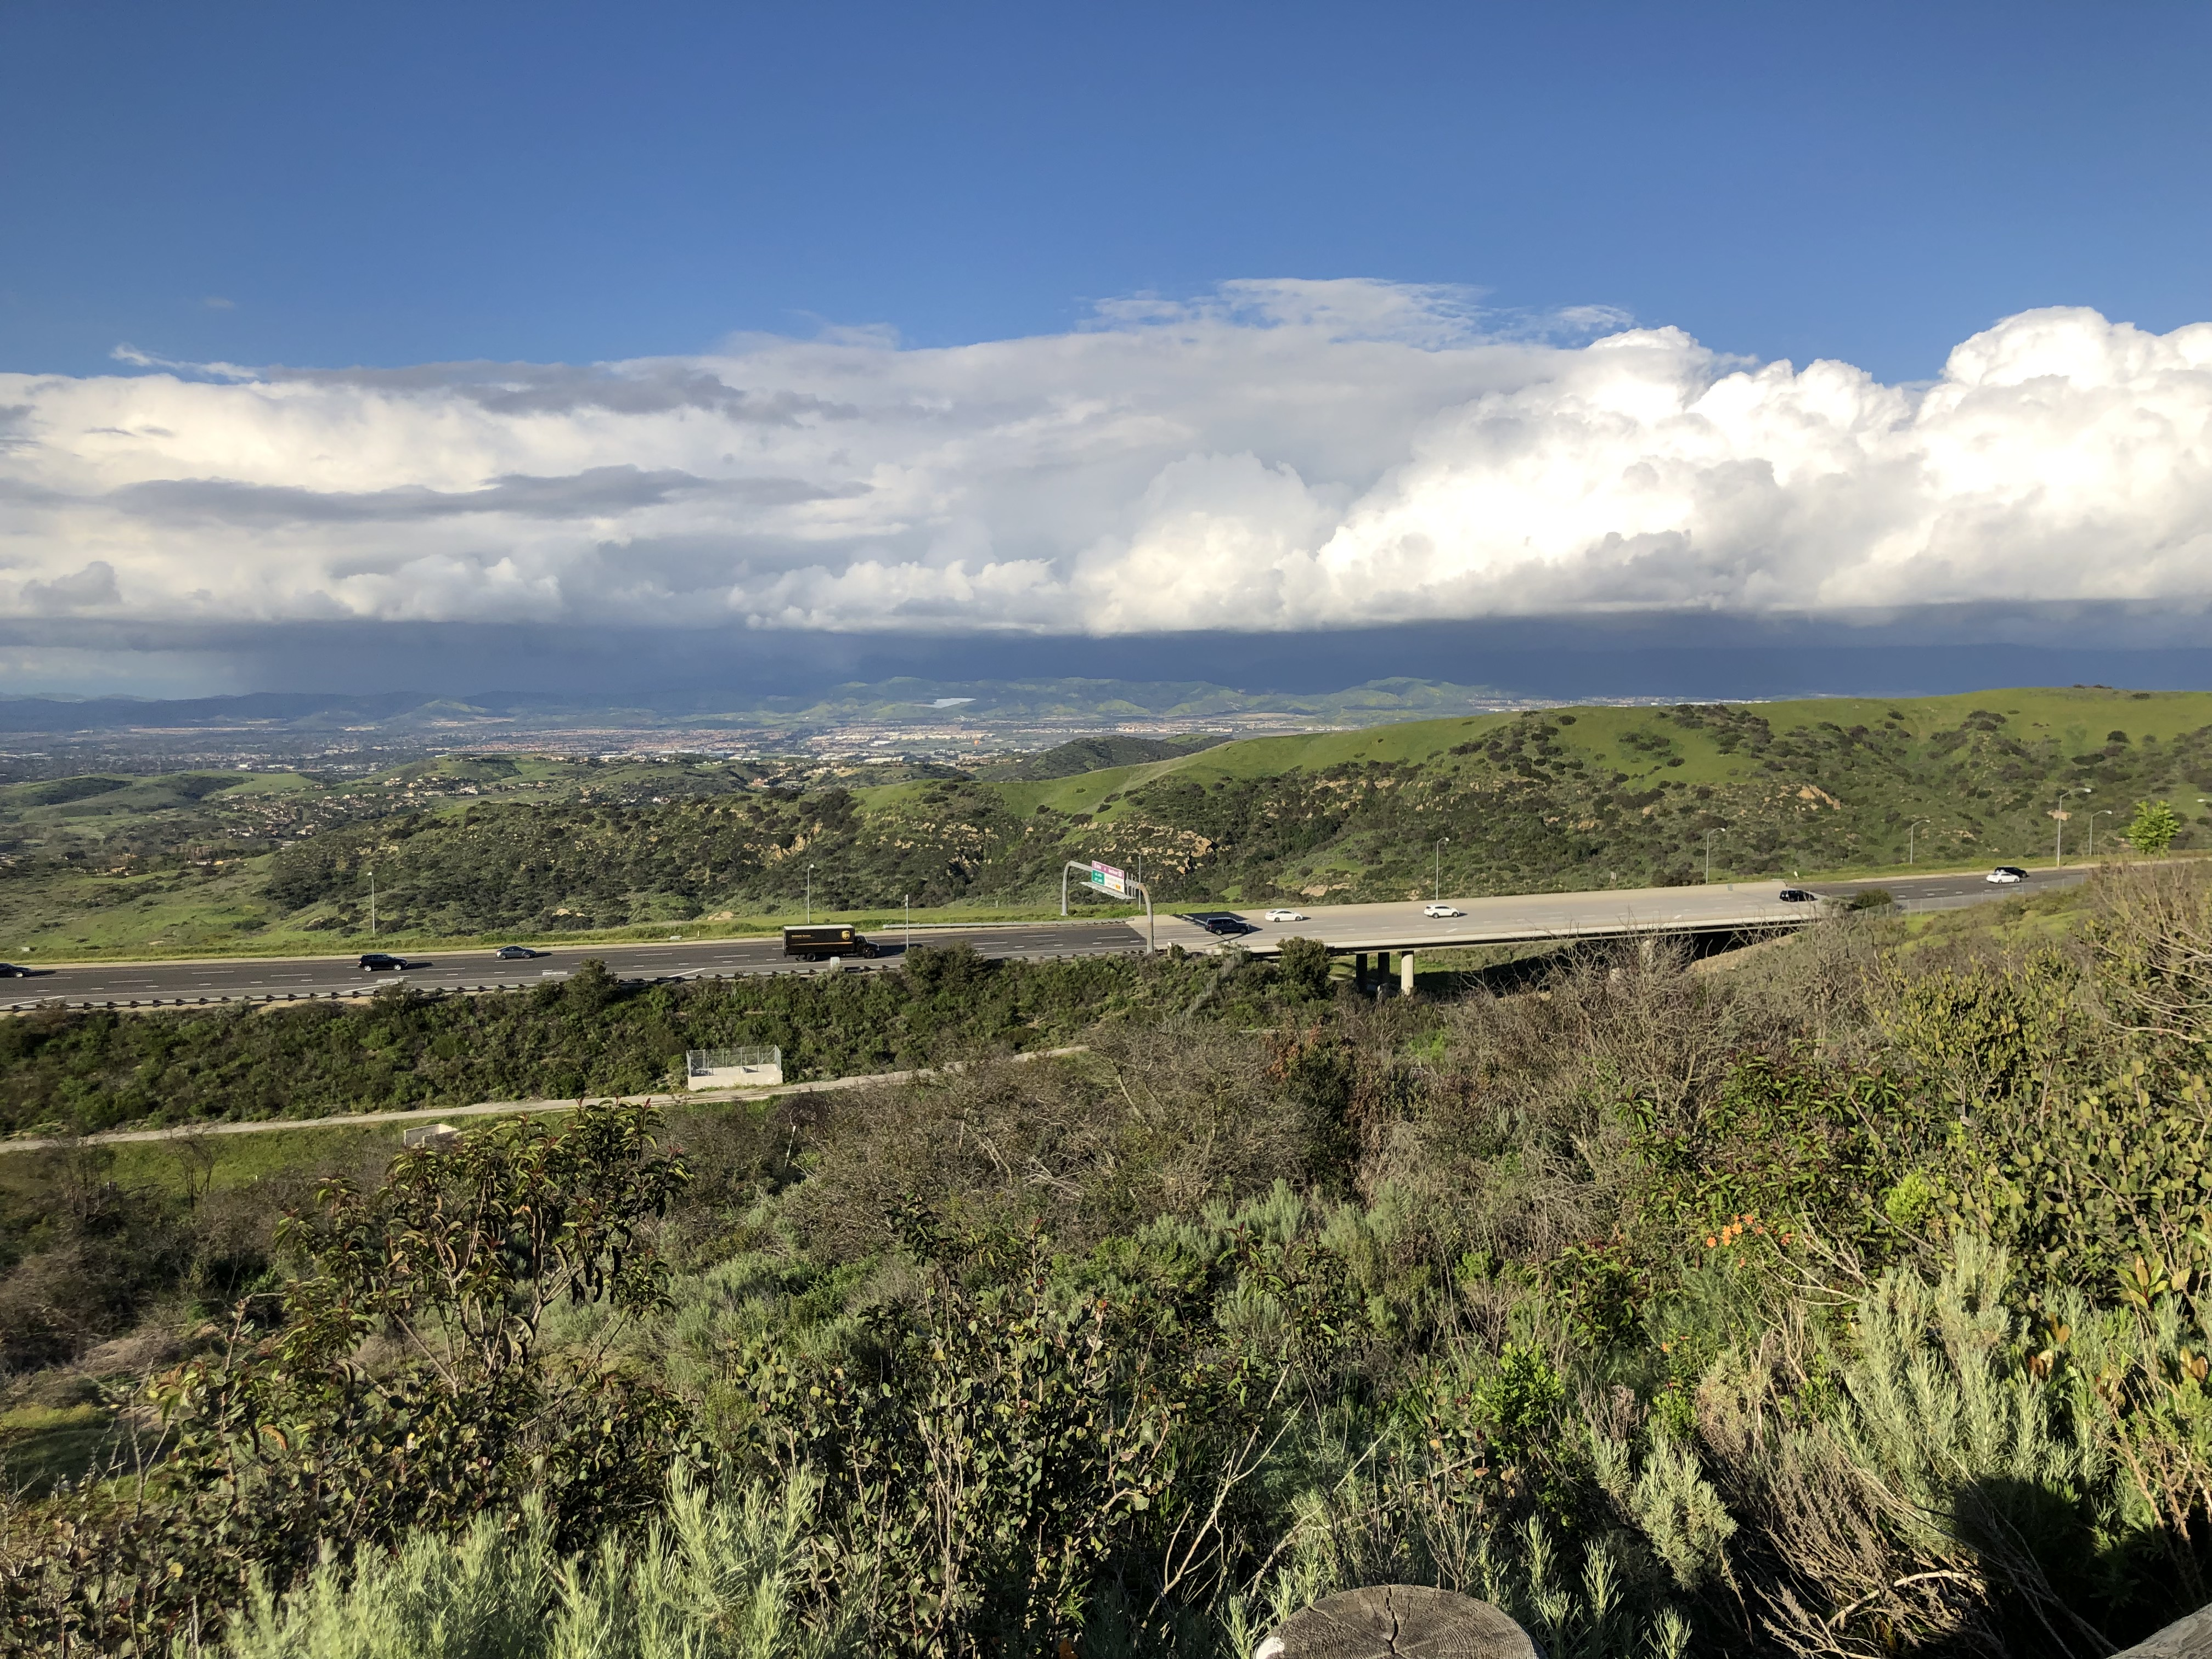 Watching a UPS Truck in the Distance as We Overlook Southern California